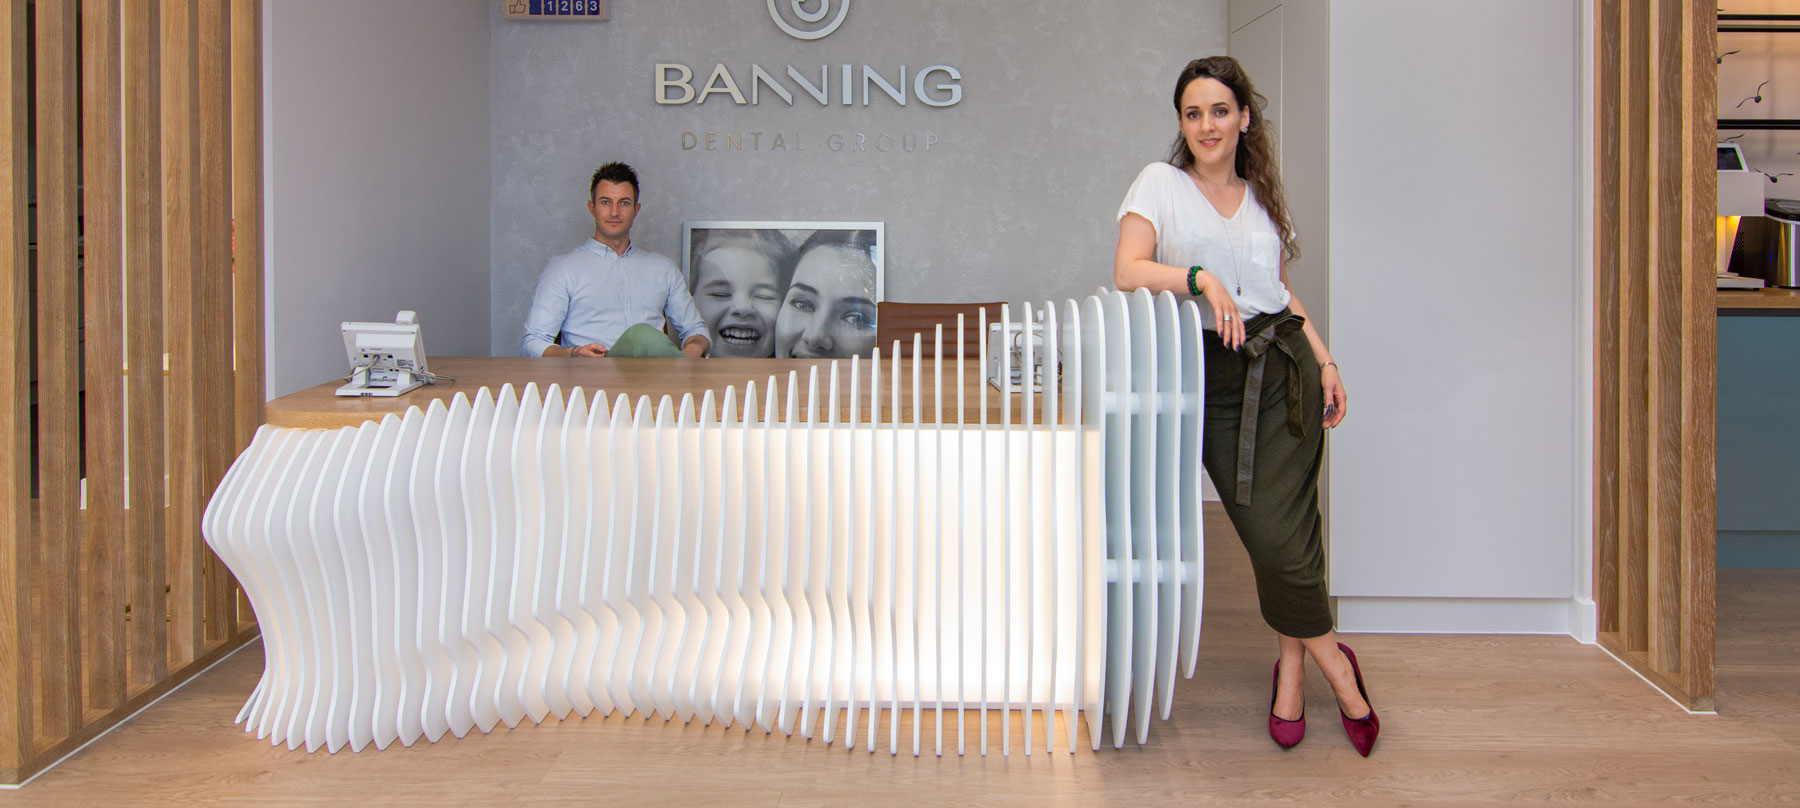 Our founders Reni (standing) & Marc (sitting) are design experts in both office and dental design they are photographed by the bespoke tooth-shaped reception desk at a Banning Dental office